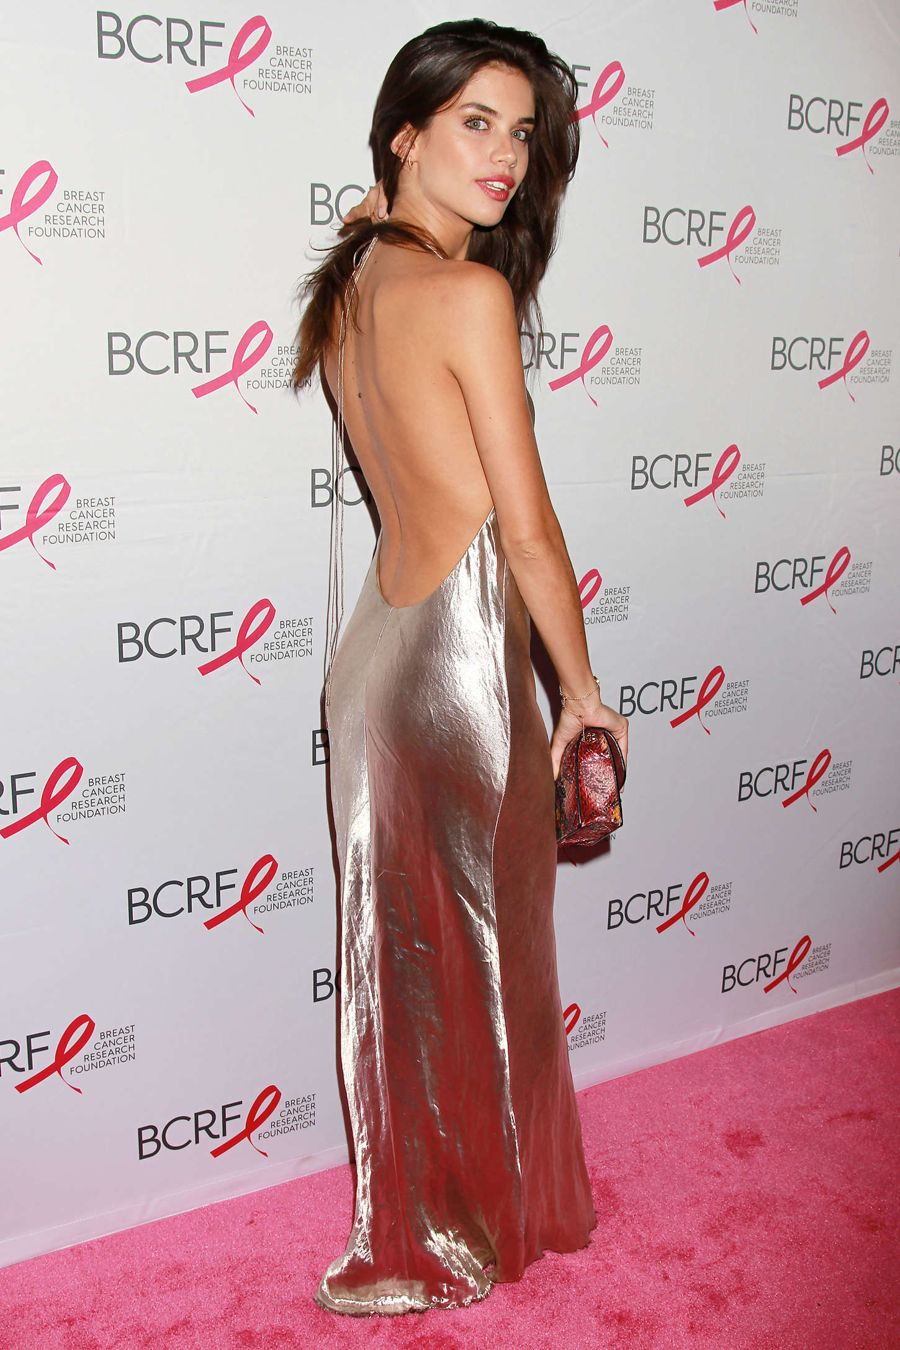 Sara Sampaio - Cancer Research Foundation Party in NYC